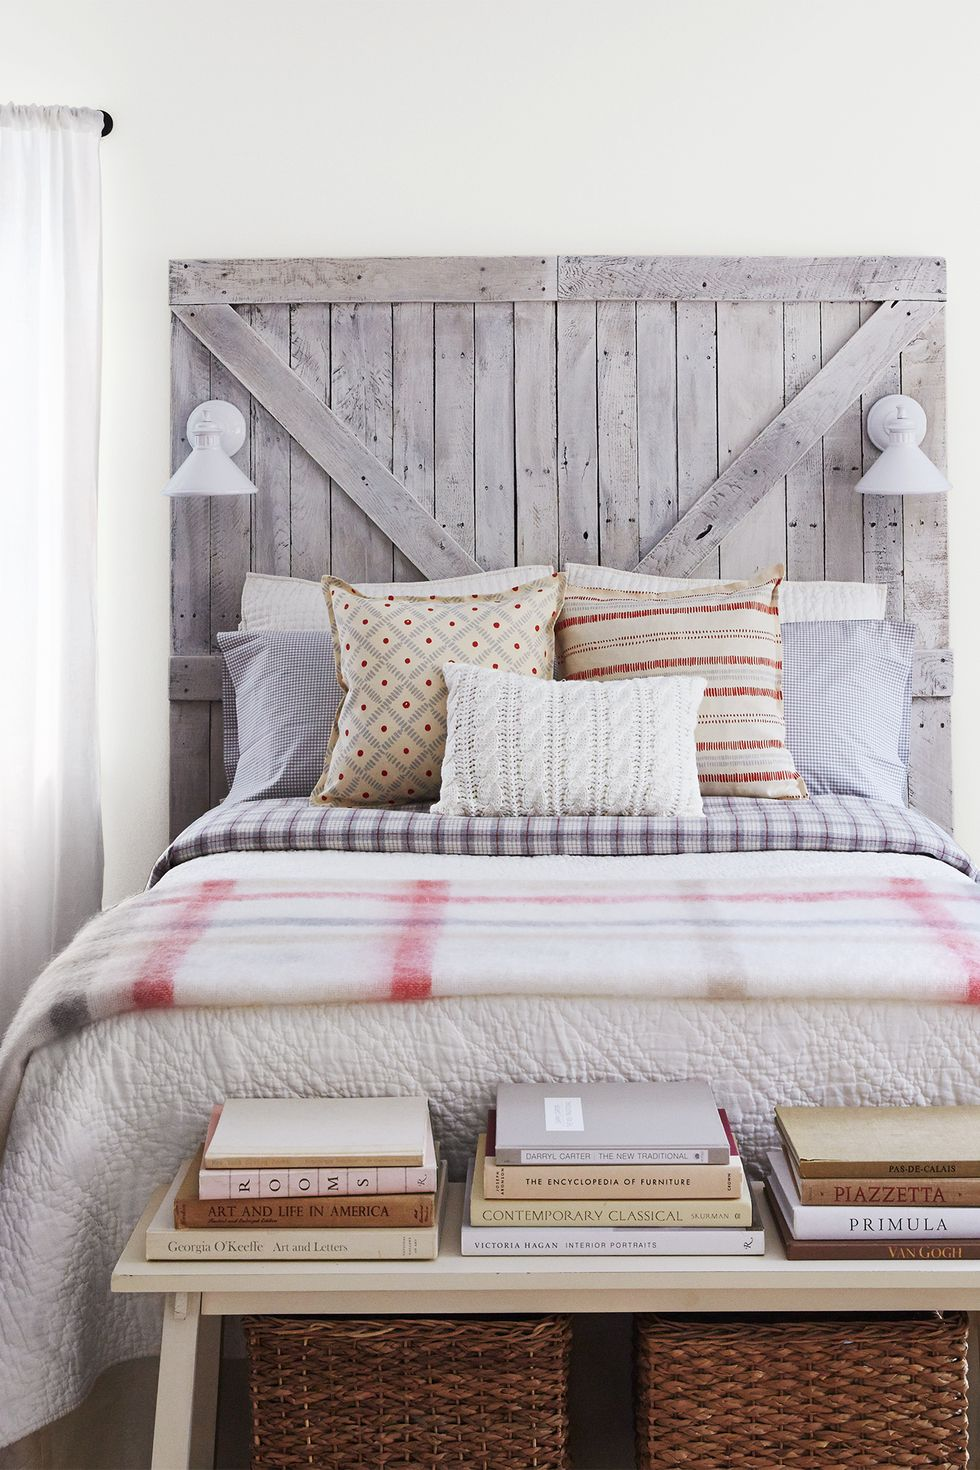 31 Small Space Ideas To Maximize Your Tiny Bedroom: Small Bedroom Storage Ideas To Maximize Space In Your Home